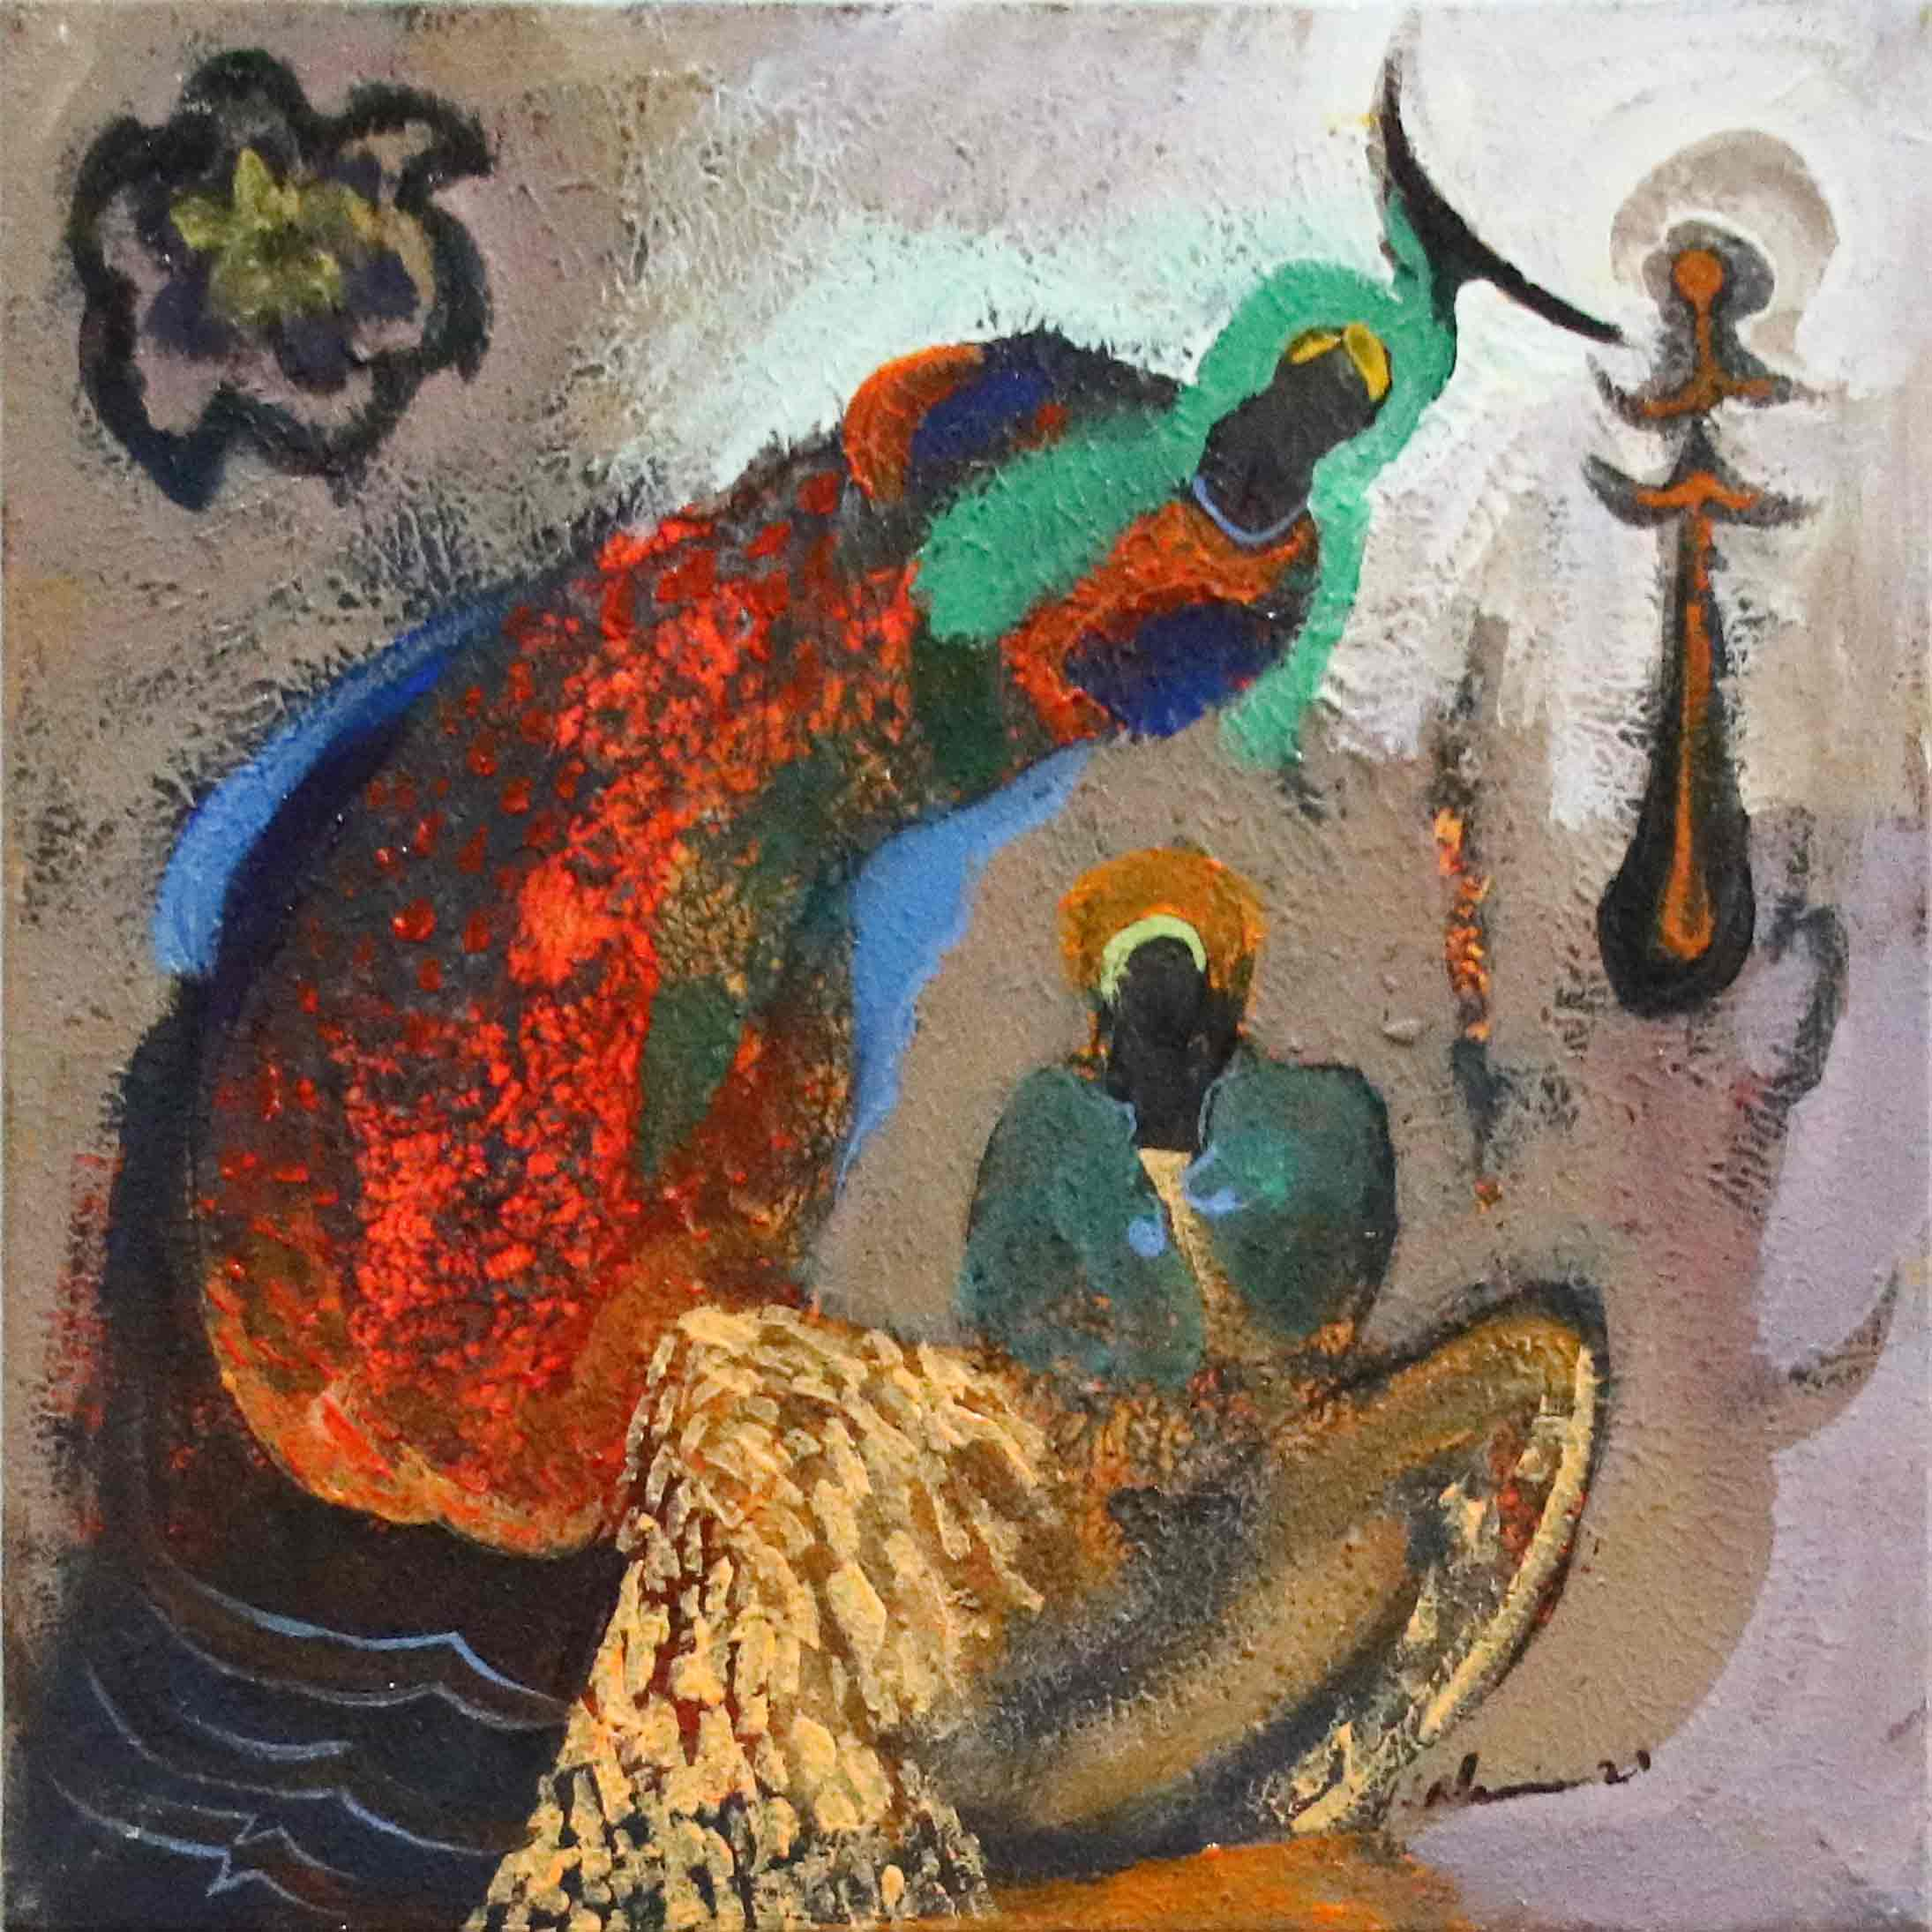 Hussein Salim   Finding Eden   2020   Eclectica Contemporary   Gallery   Cape Town  